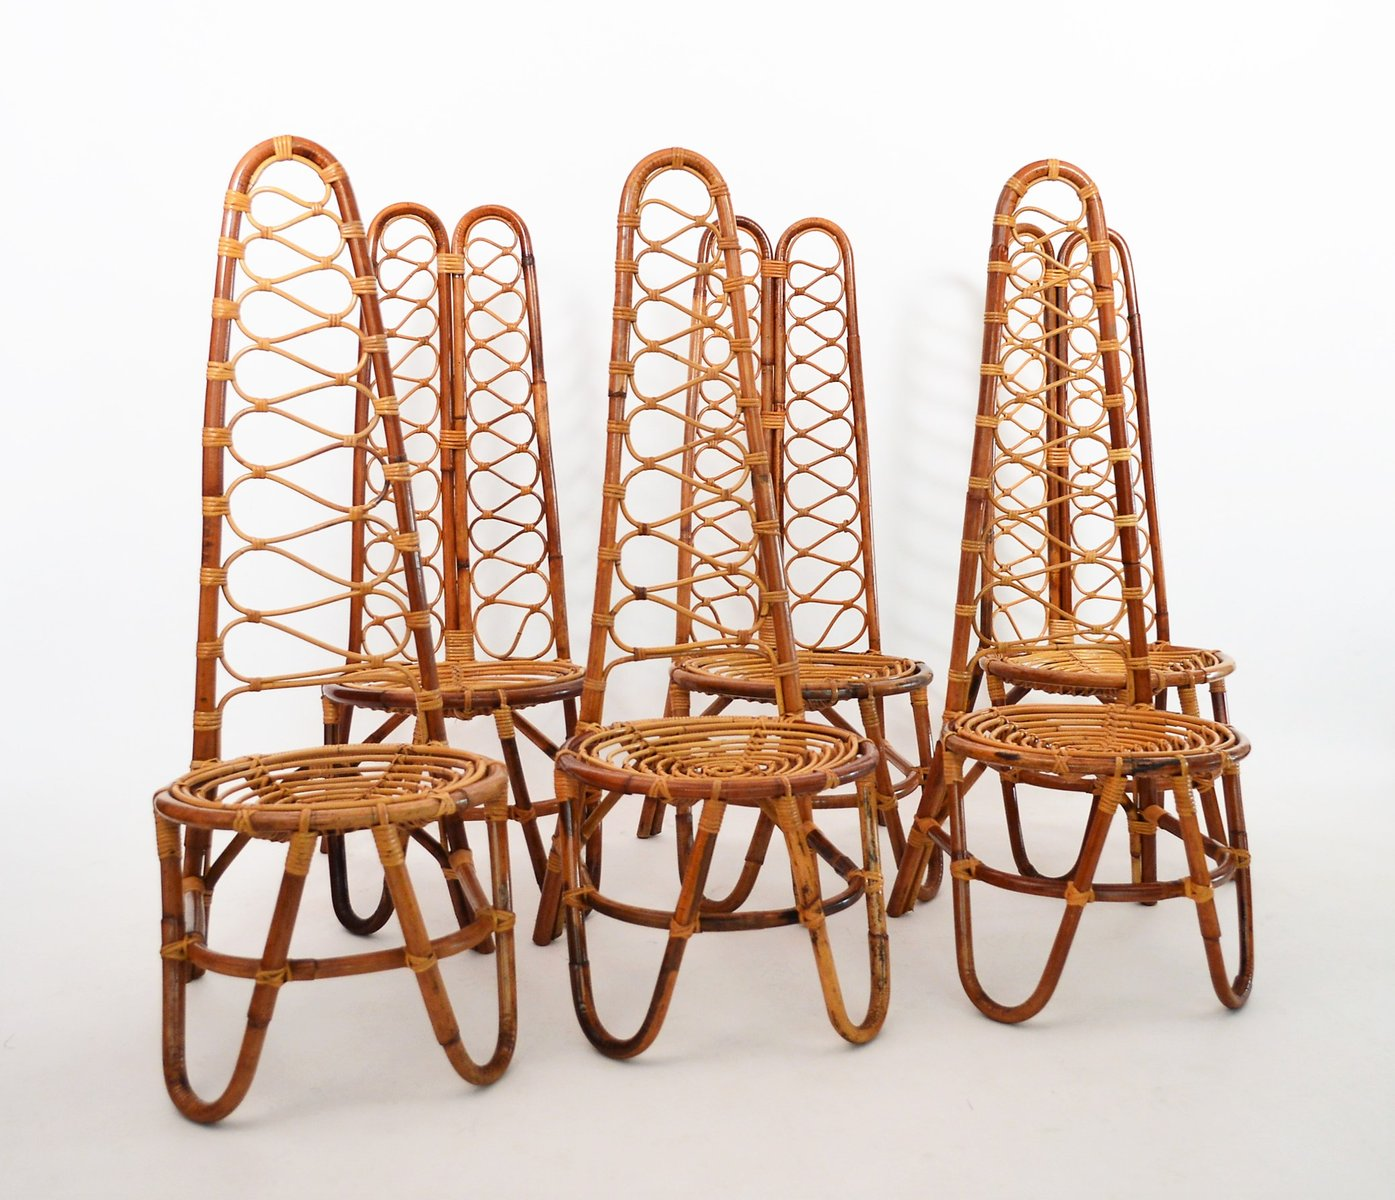 Previous. Next. 1 / 17. Mid Century Bamboo Chairs ...